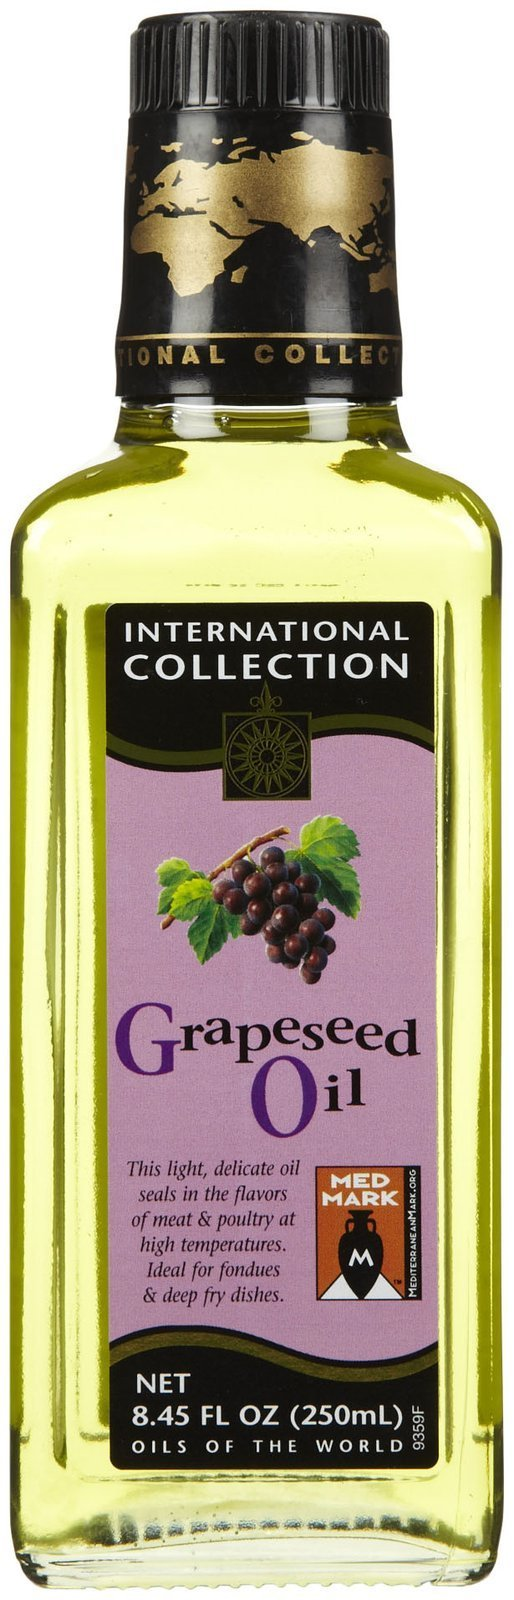 International Collection Grapeseed Oil, 6 Pound